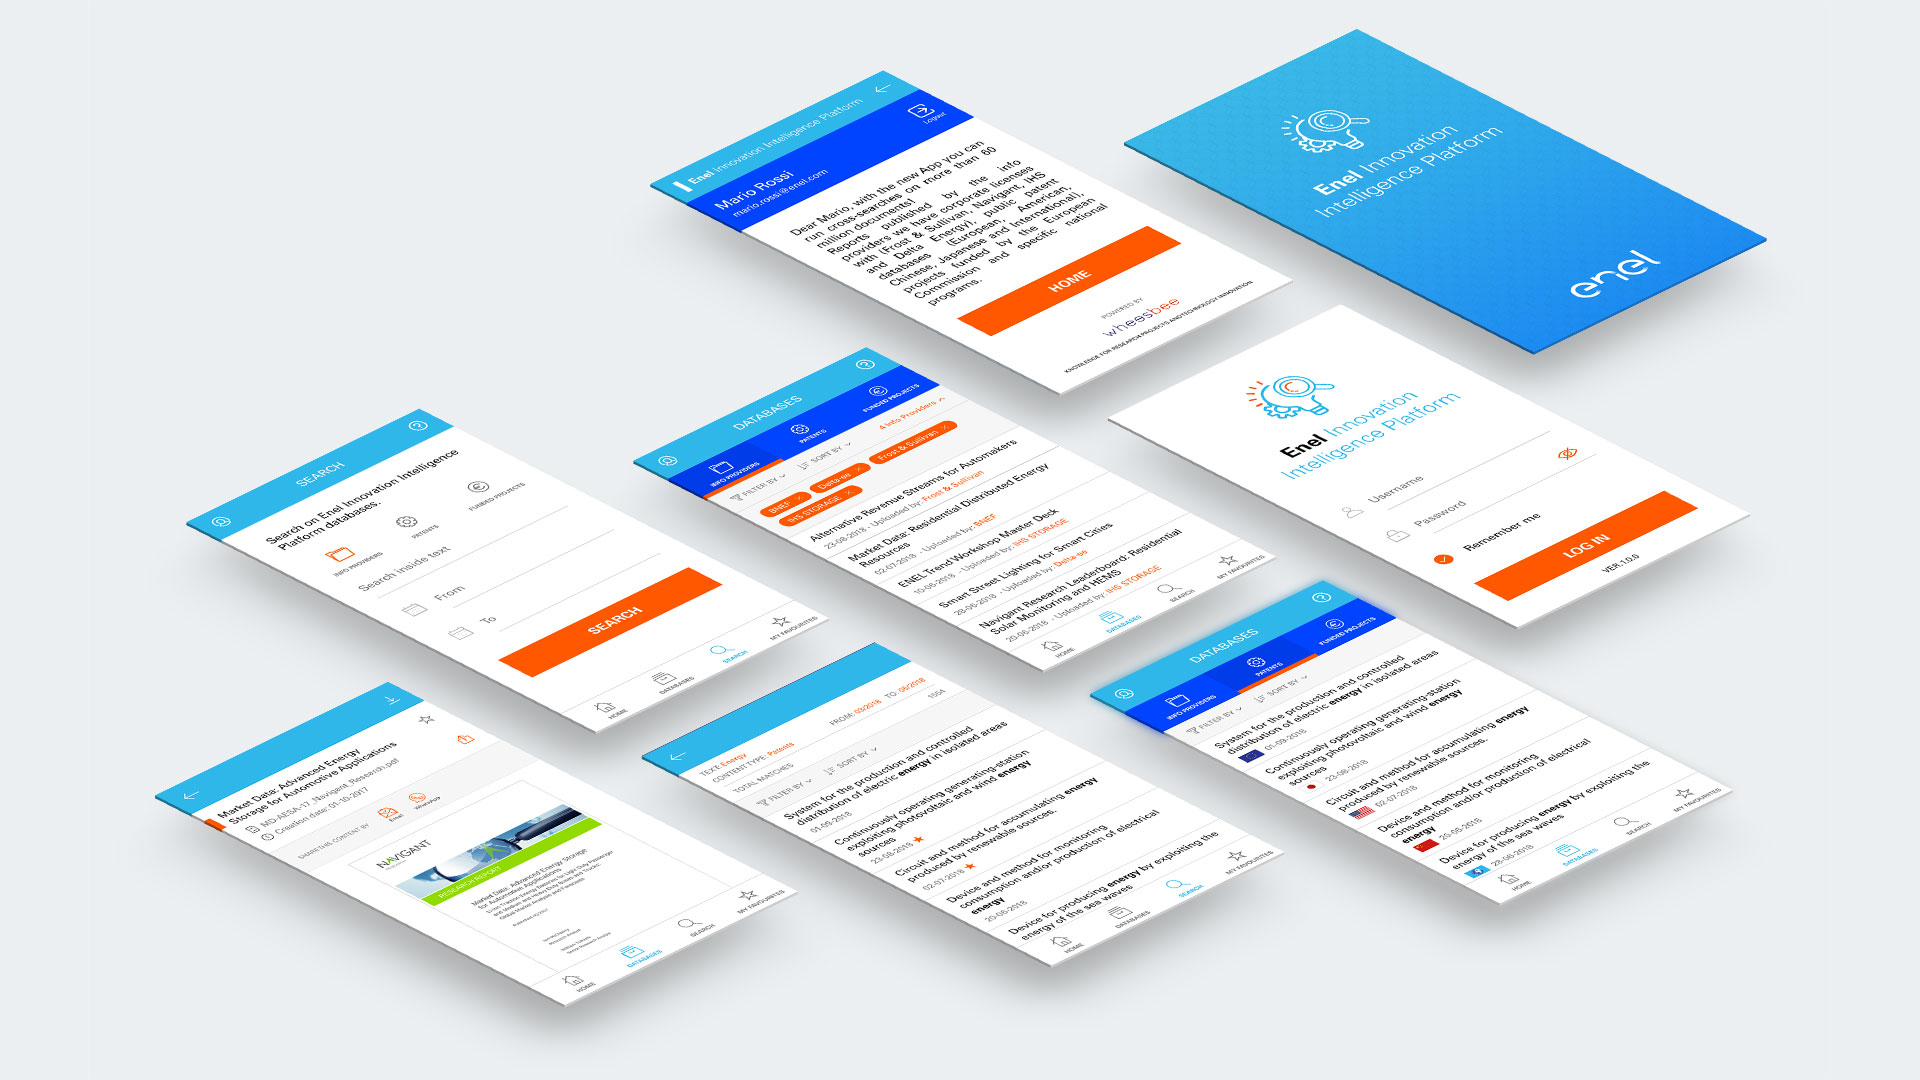 Enel Innovation Intelligence Platform App